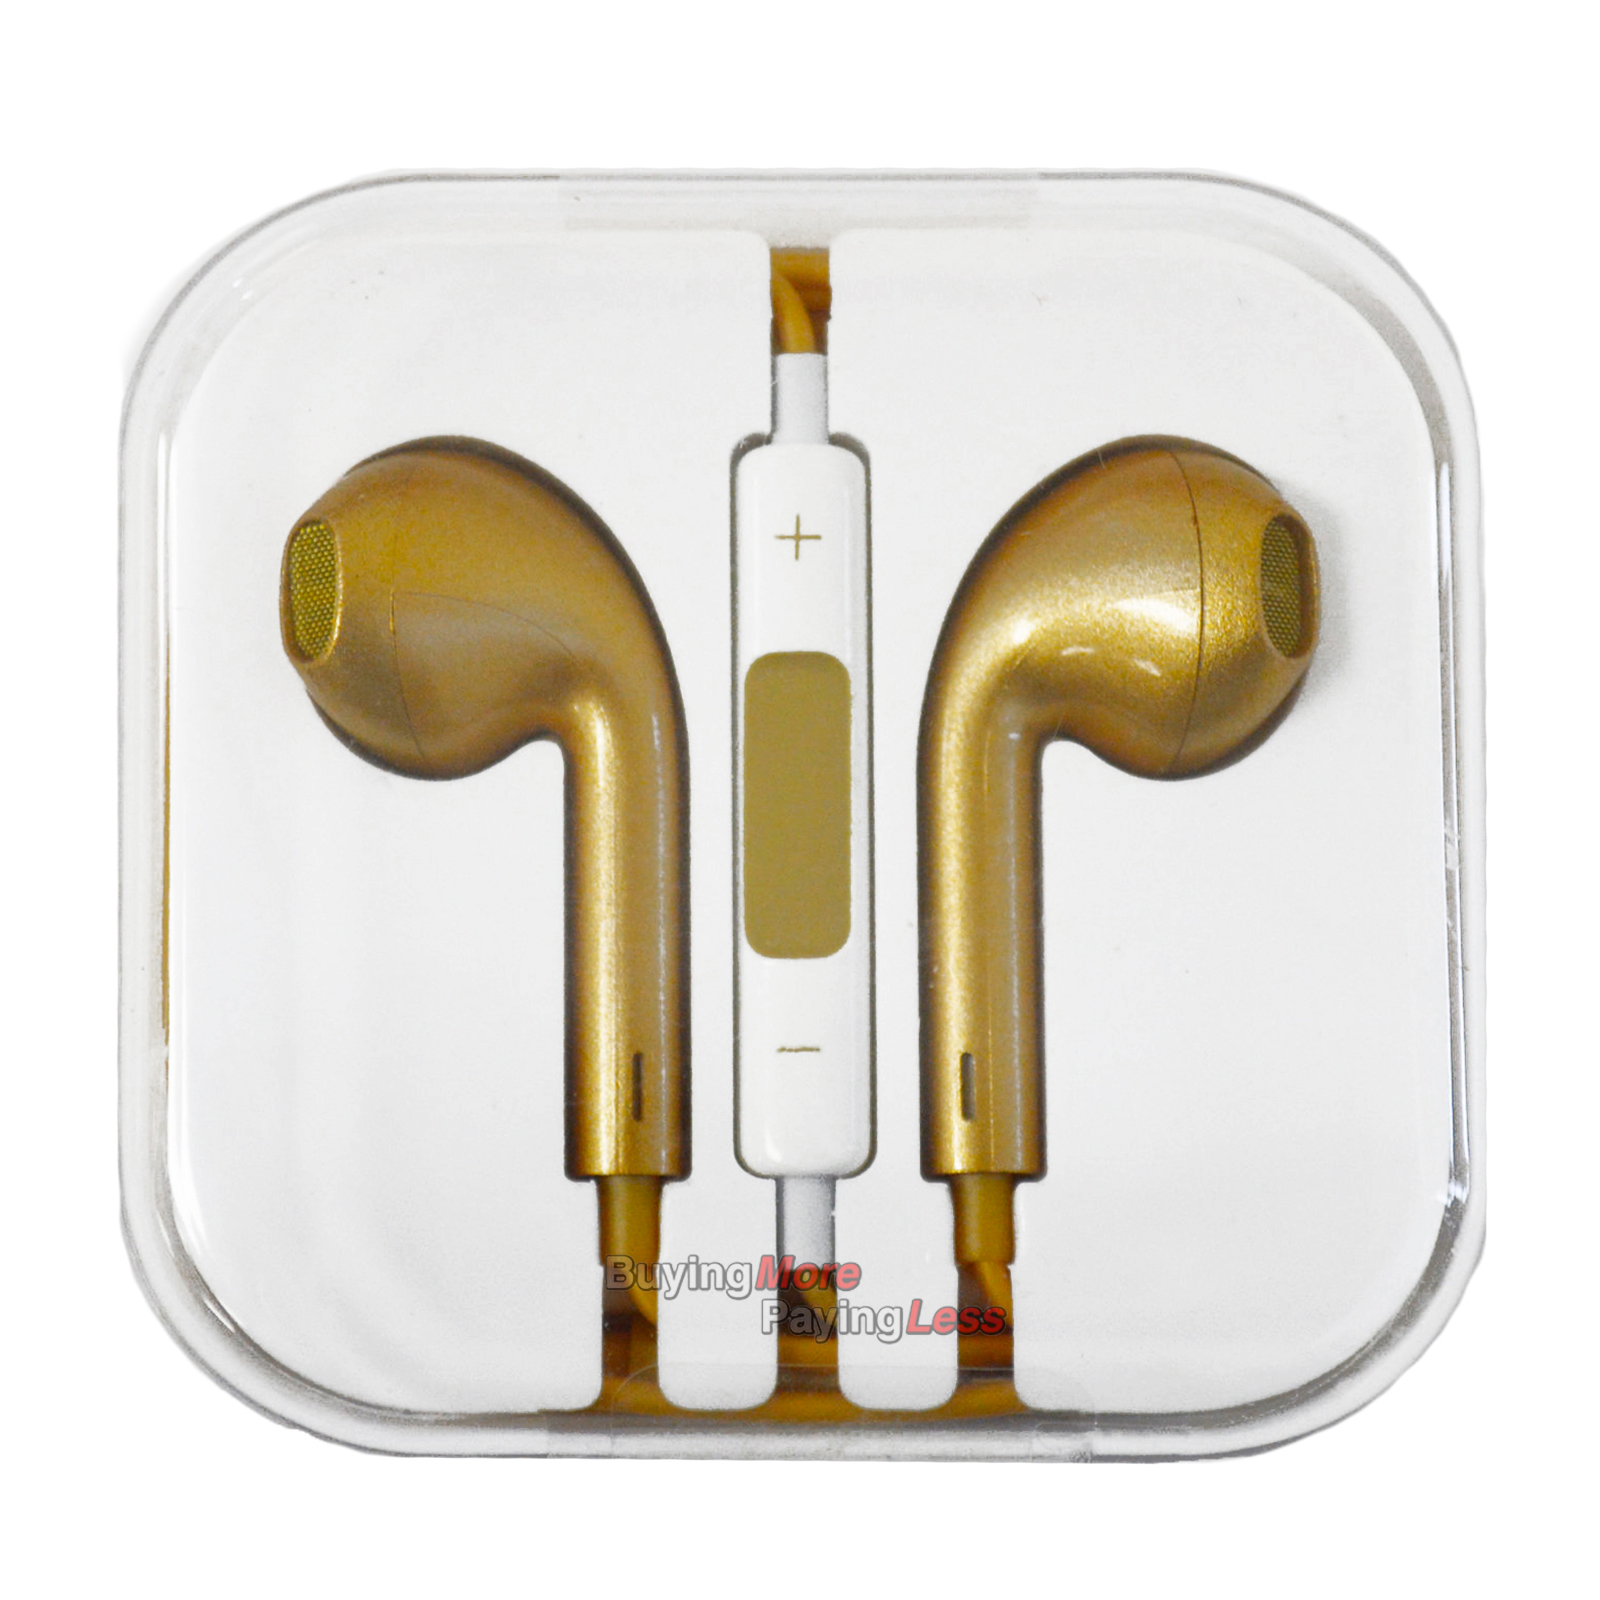 gold iphone headphones gold earphones for iphone 5 5c 4s 4 ipod nano w mic 10715